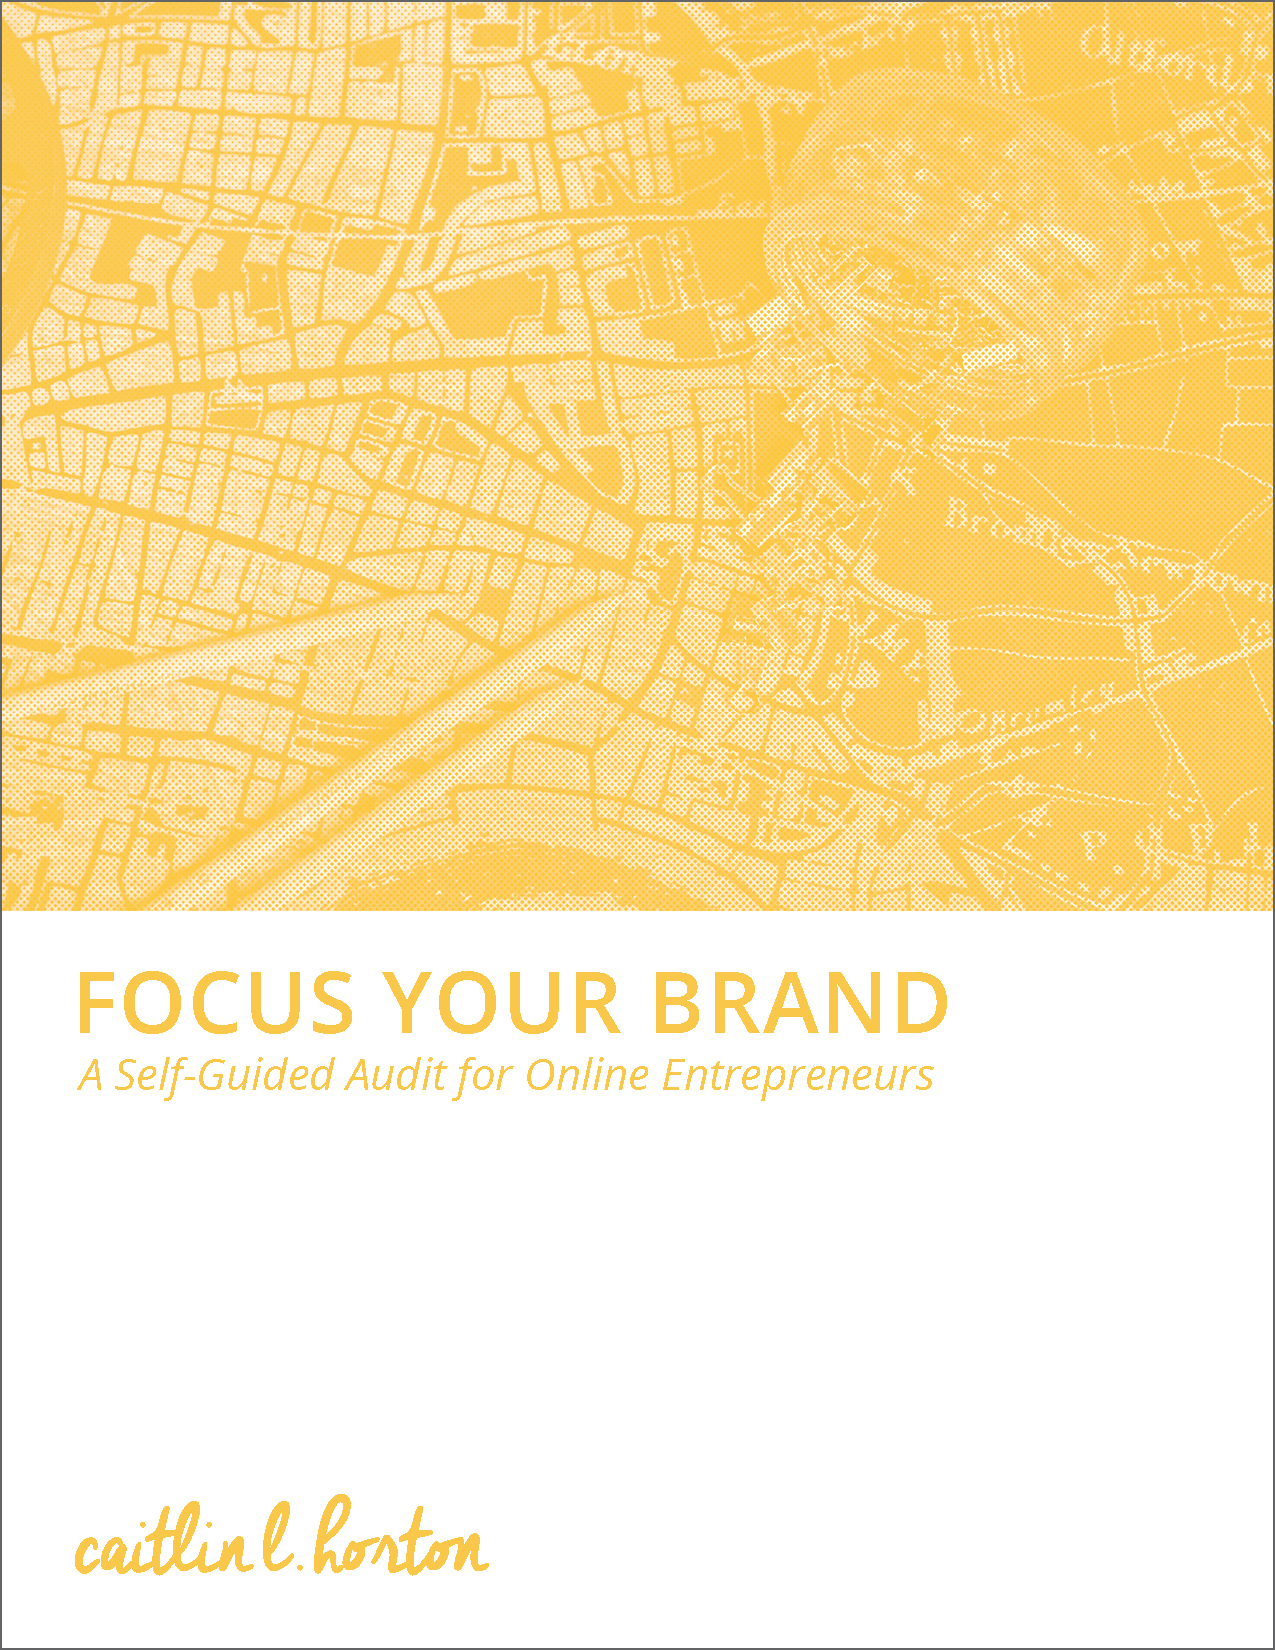 Horton Brand Strategy's Focus Your Brand Self-Guided Brand Audit